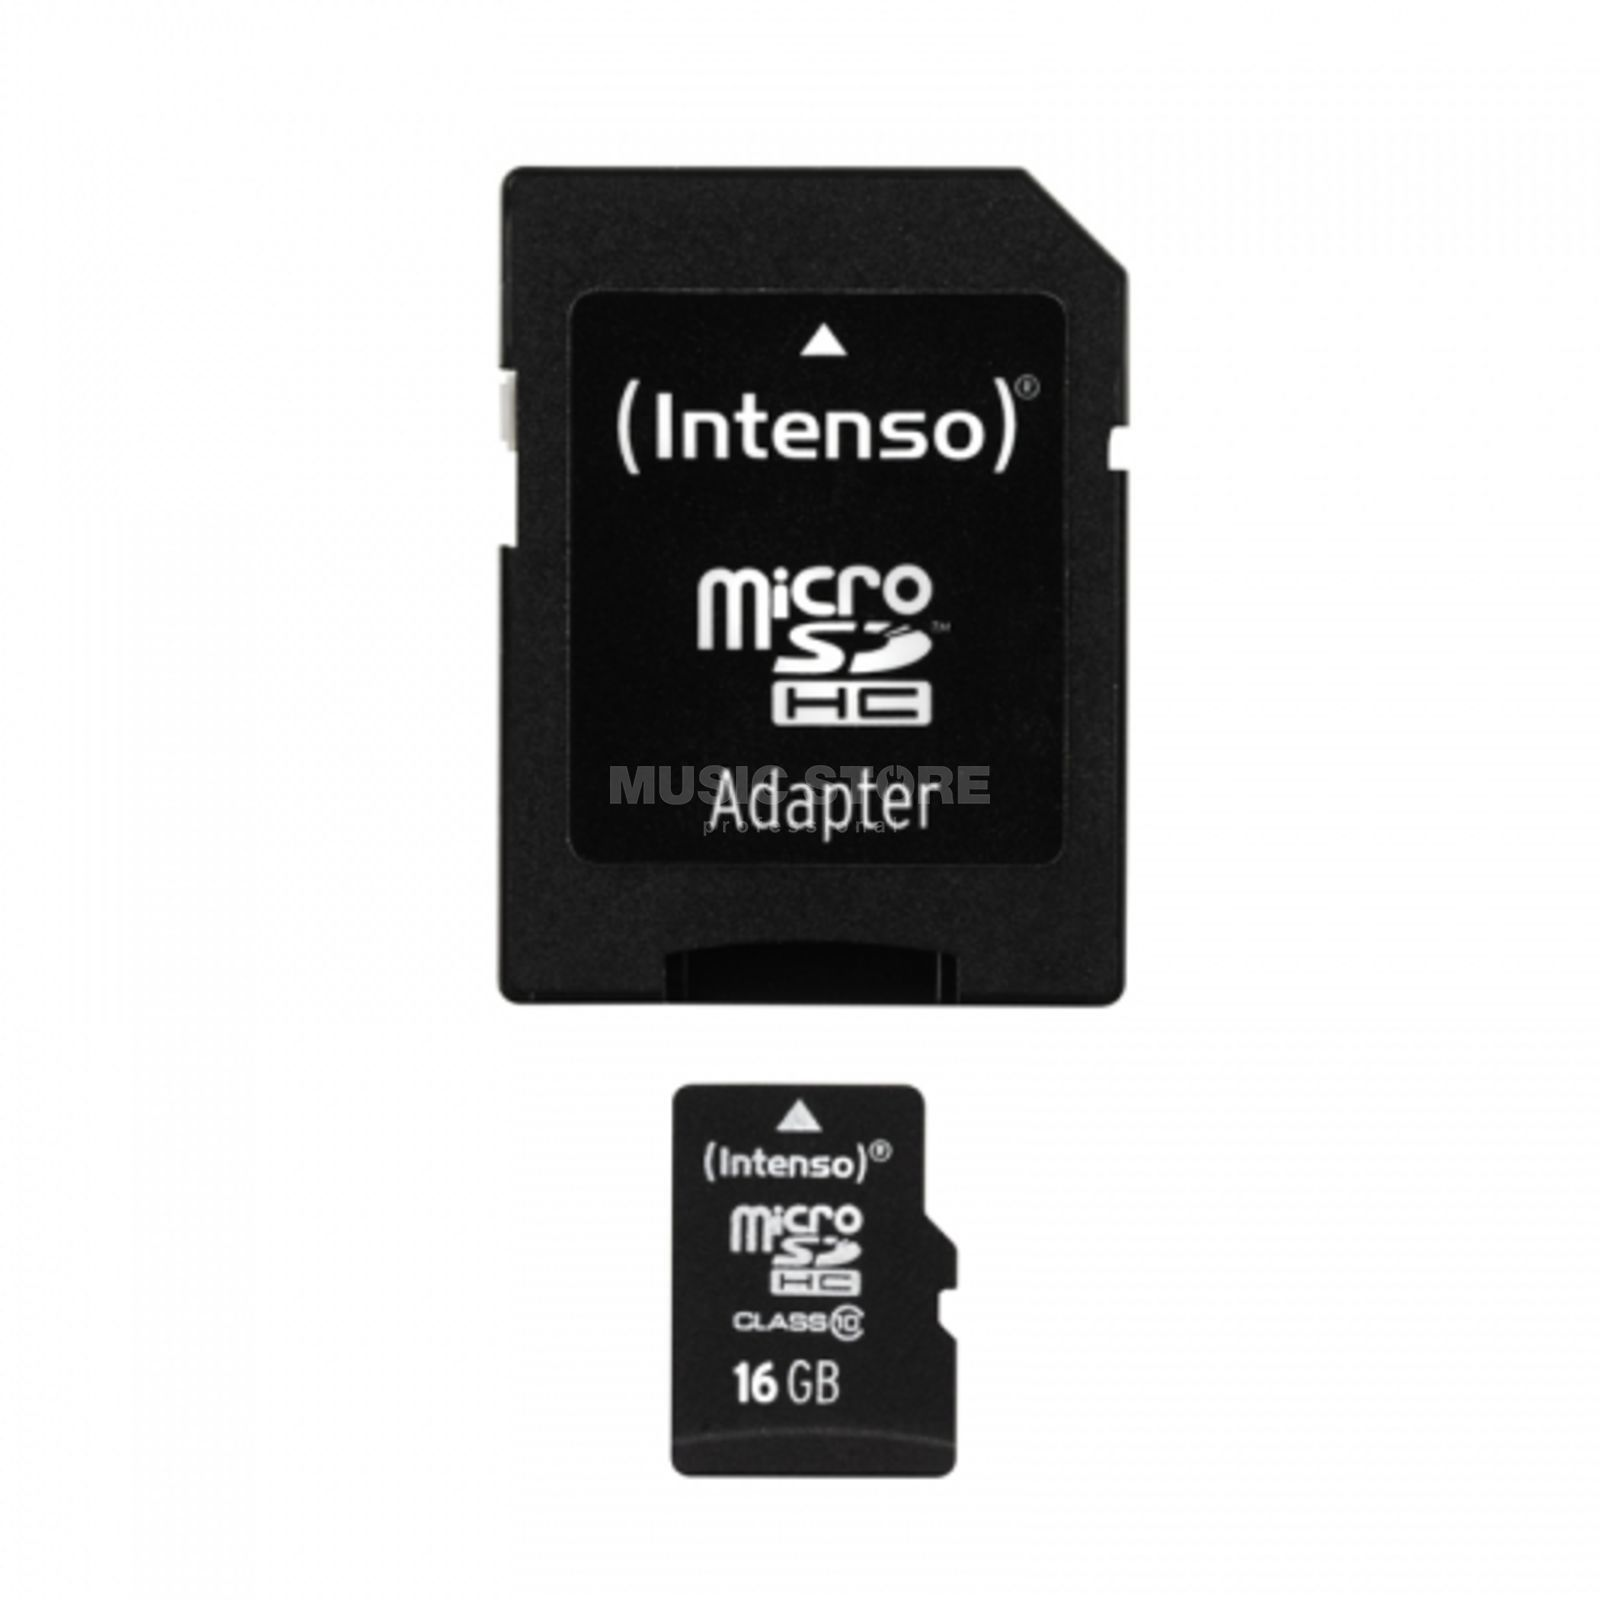 Intenso 16GB Micro SDHC Card CL10 mit Adapter/ für Card Recorder Produktbild